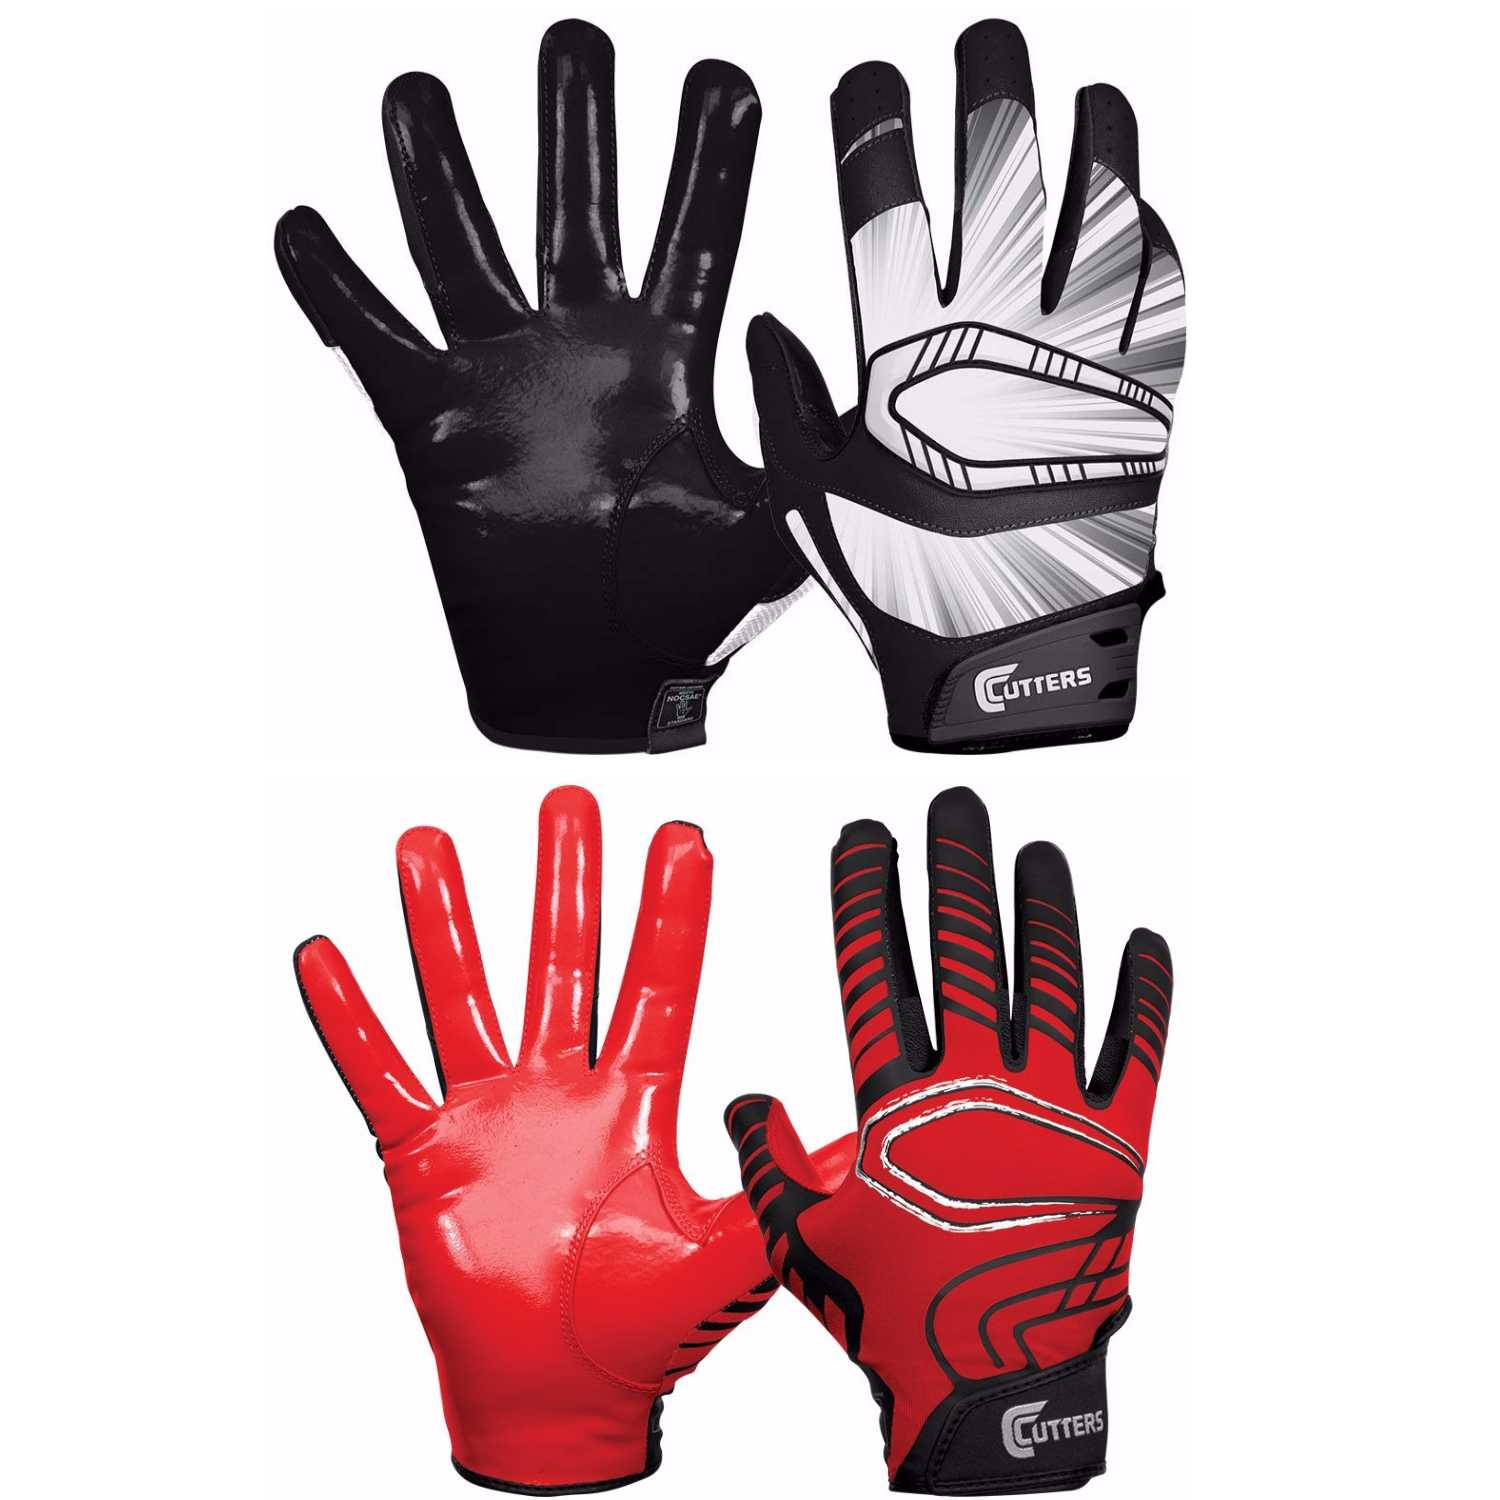 Cutters Gloves REV Pro Receiver Gloves (Black)  and Red Pair (Large) Bundle